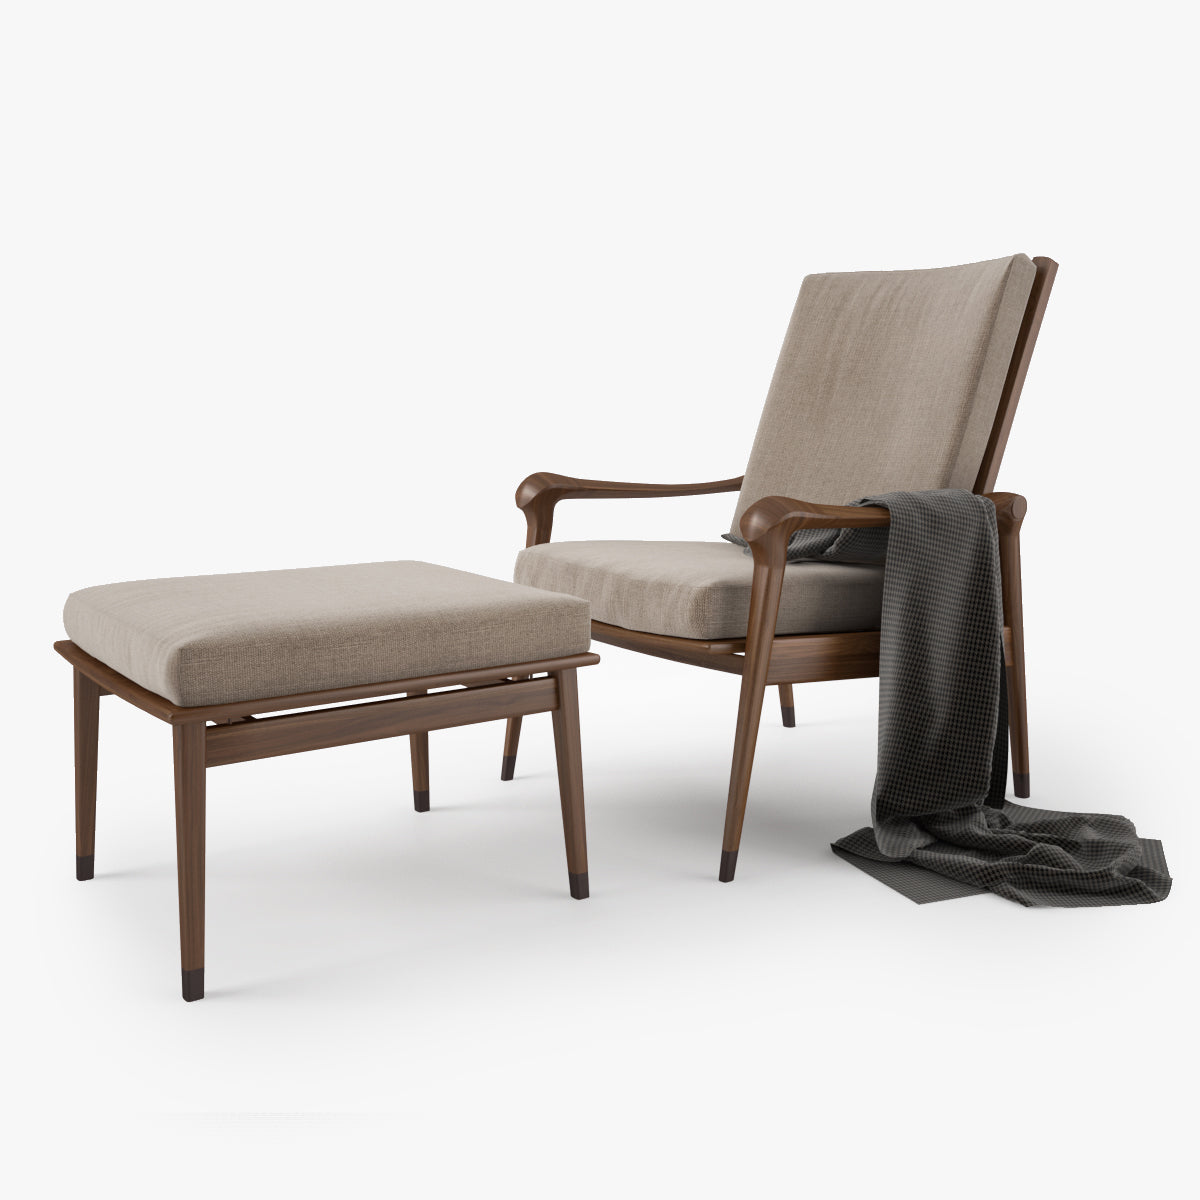 Giorgetti Denny Armchair and Stool 3D Model